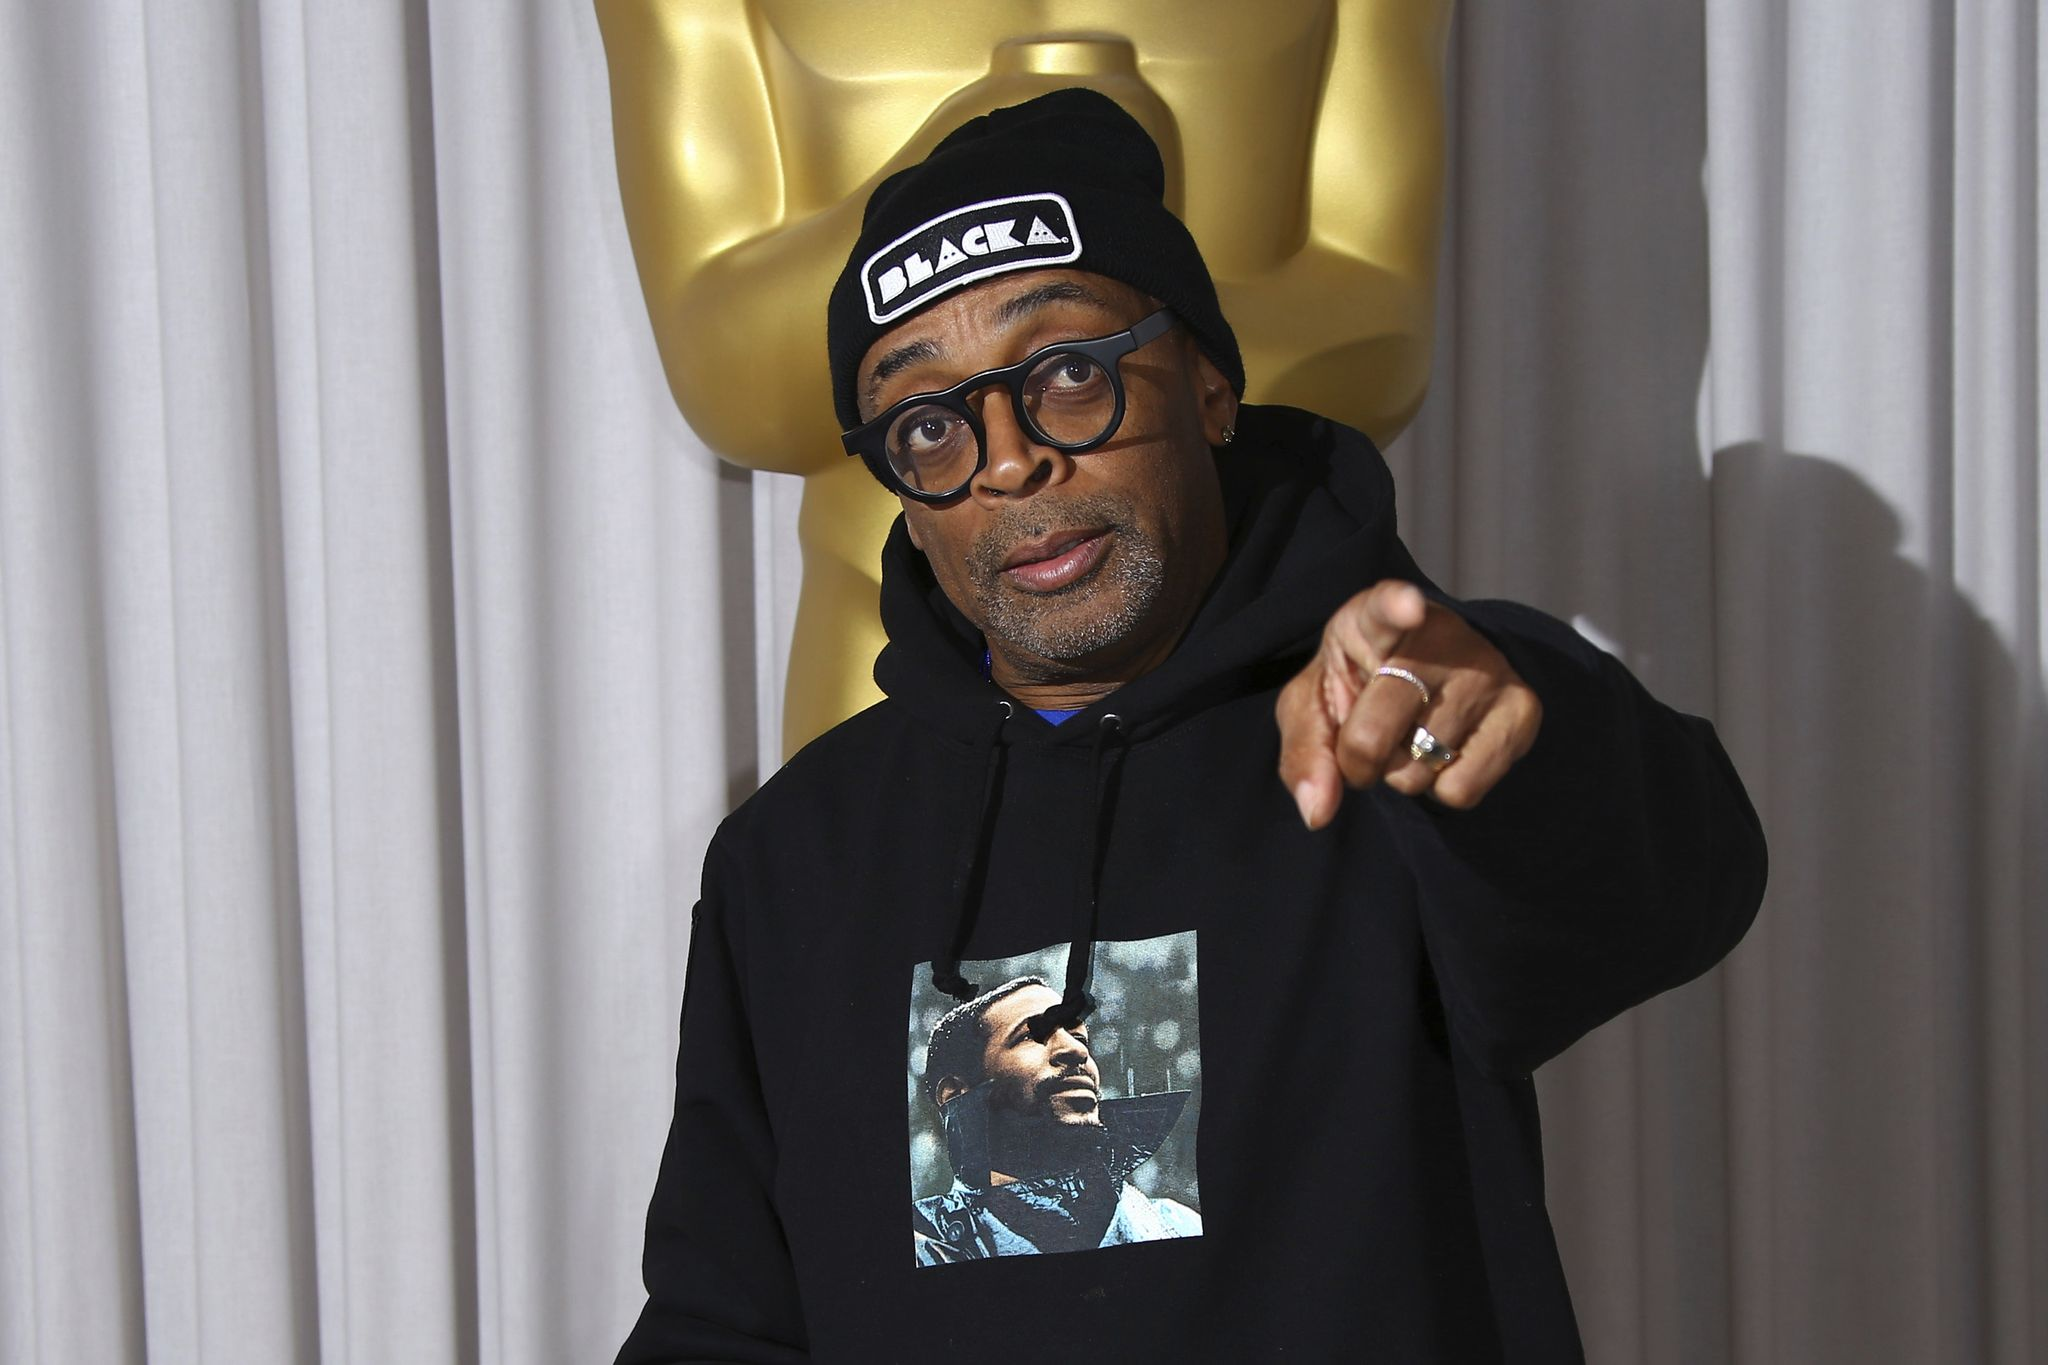 Spike Lee says #OscarsSoWhite political pressure prompted 'feast' of award nominations